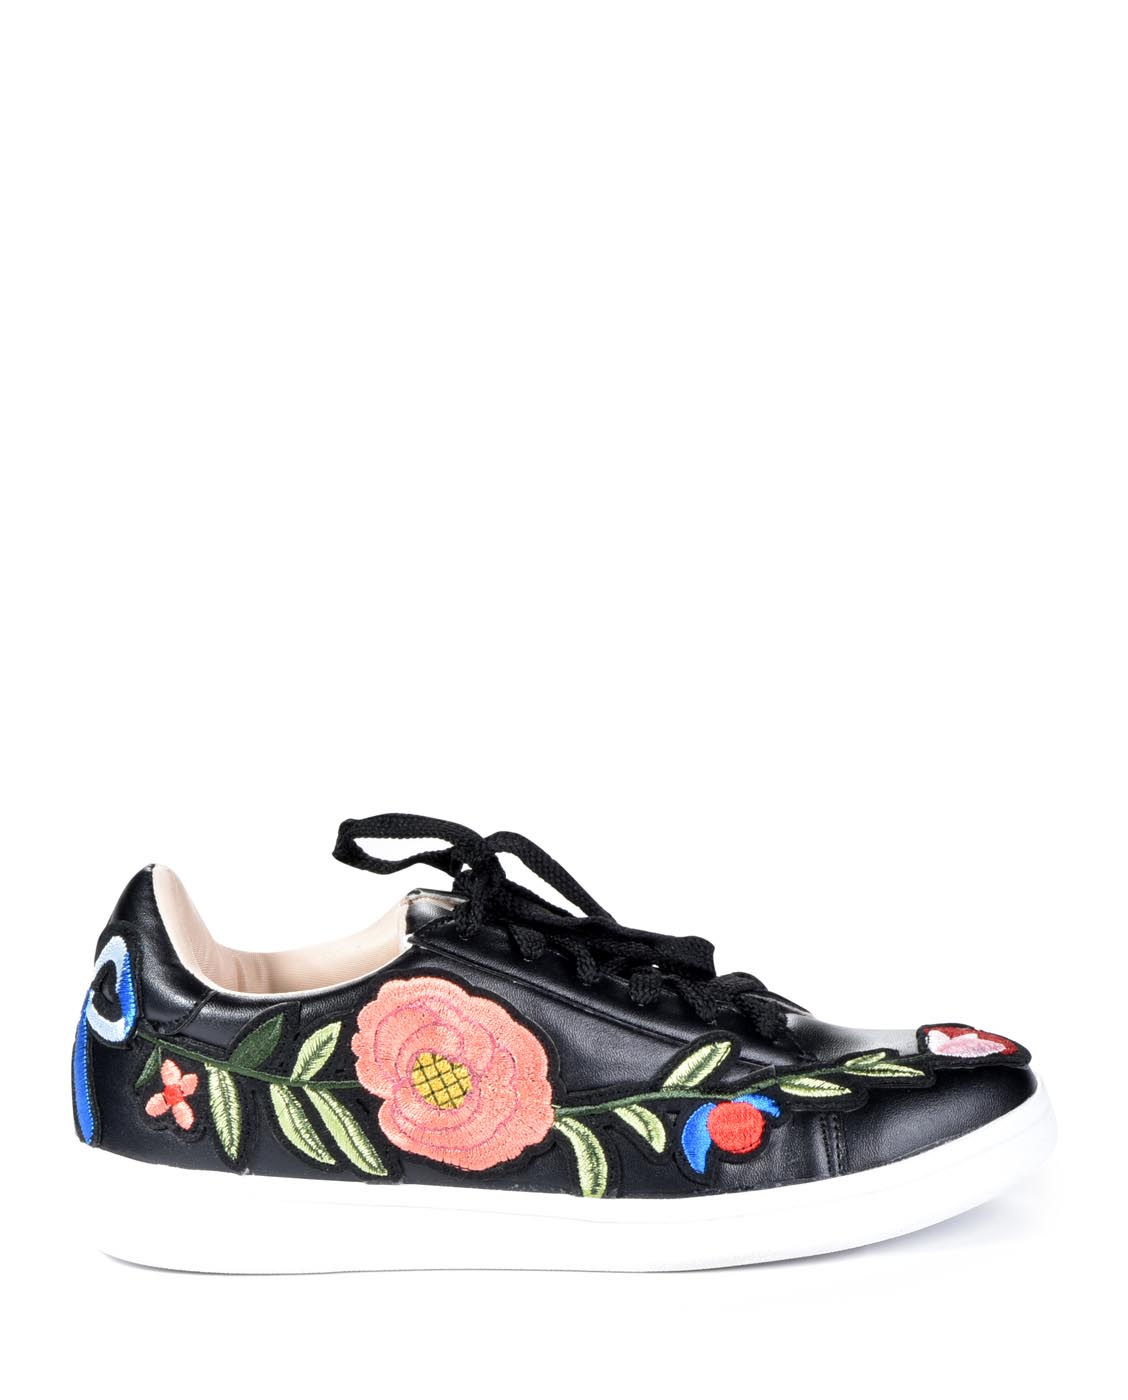 NEW CHASE & CHLOE FLORAL EMBROIDERED PLATFORM SNEAKERS CELINE1